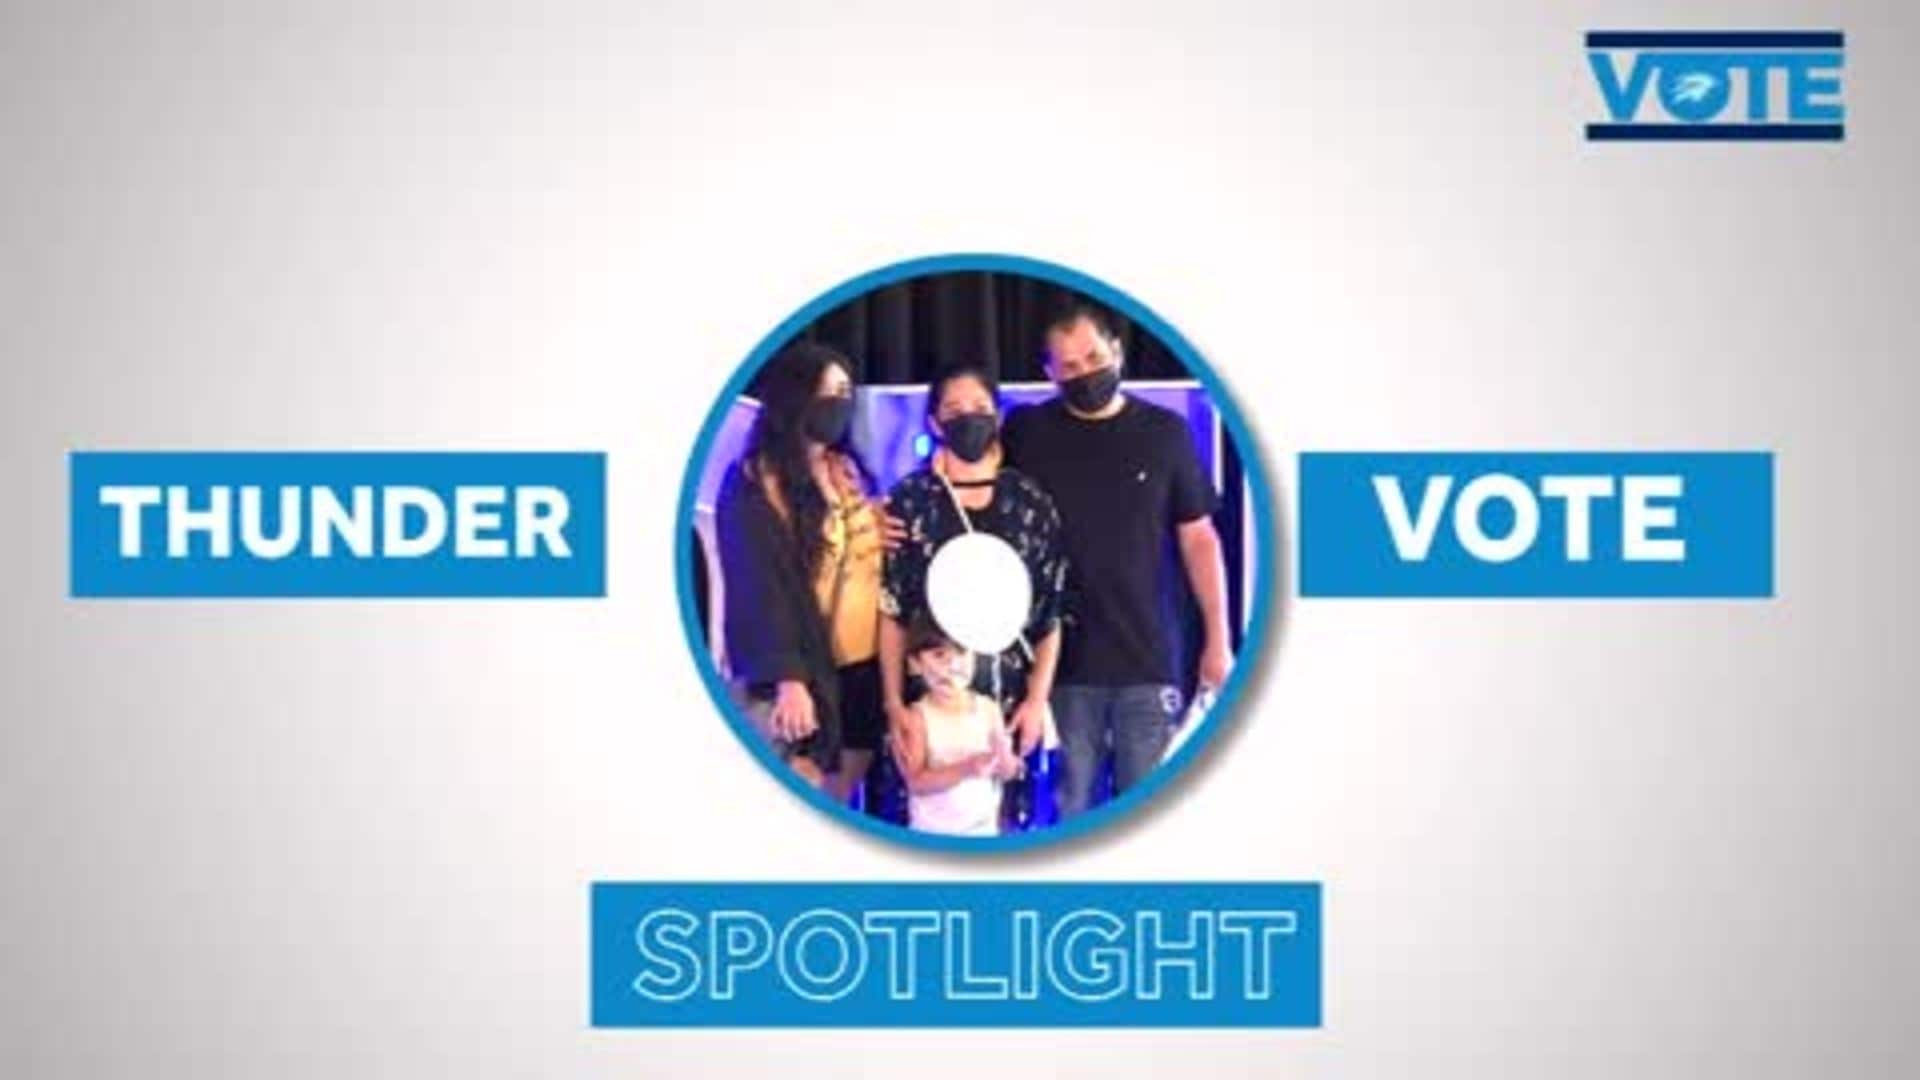 Thunder VOTE Spotlight: 'Speak Up'